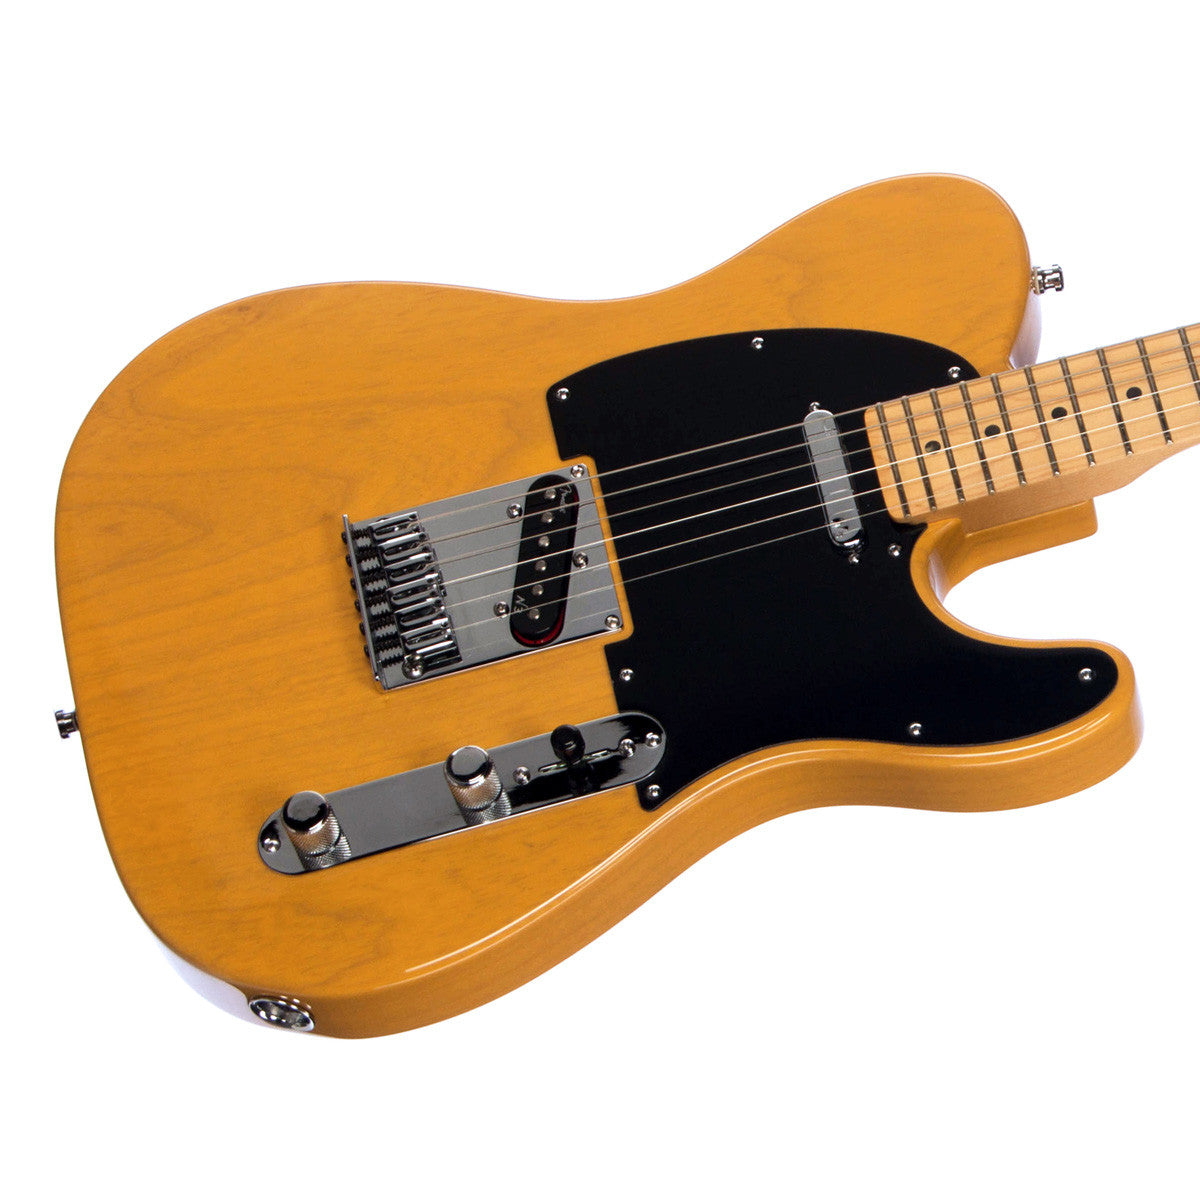 fender_american_deluxe_telecaster_am_dlx_tele_butterscotch_blonde_maple_neck_electric_guitar_0119502750_frontbody american deluxe telecaster wiring diagrams dolgular com fender american deluxe telecaster wiring diagram at mr168.co